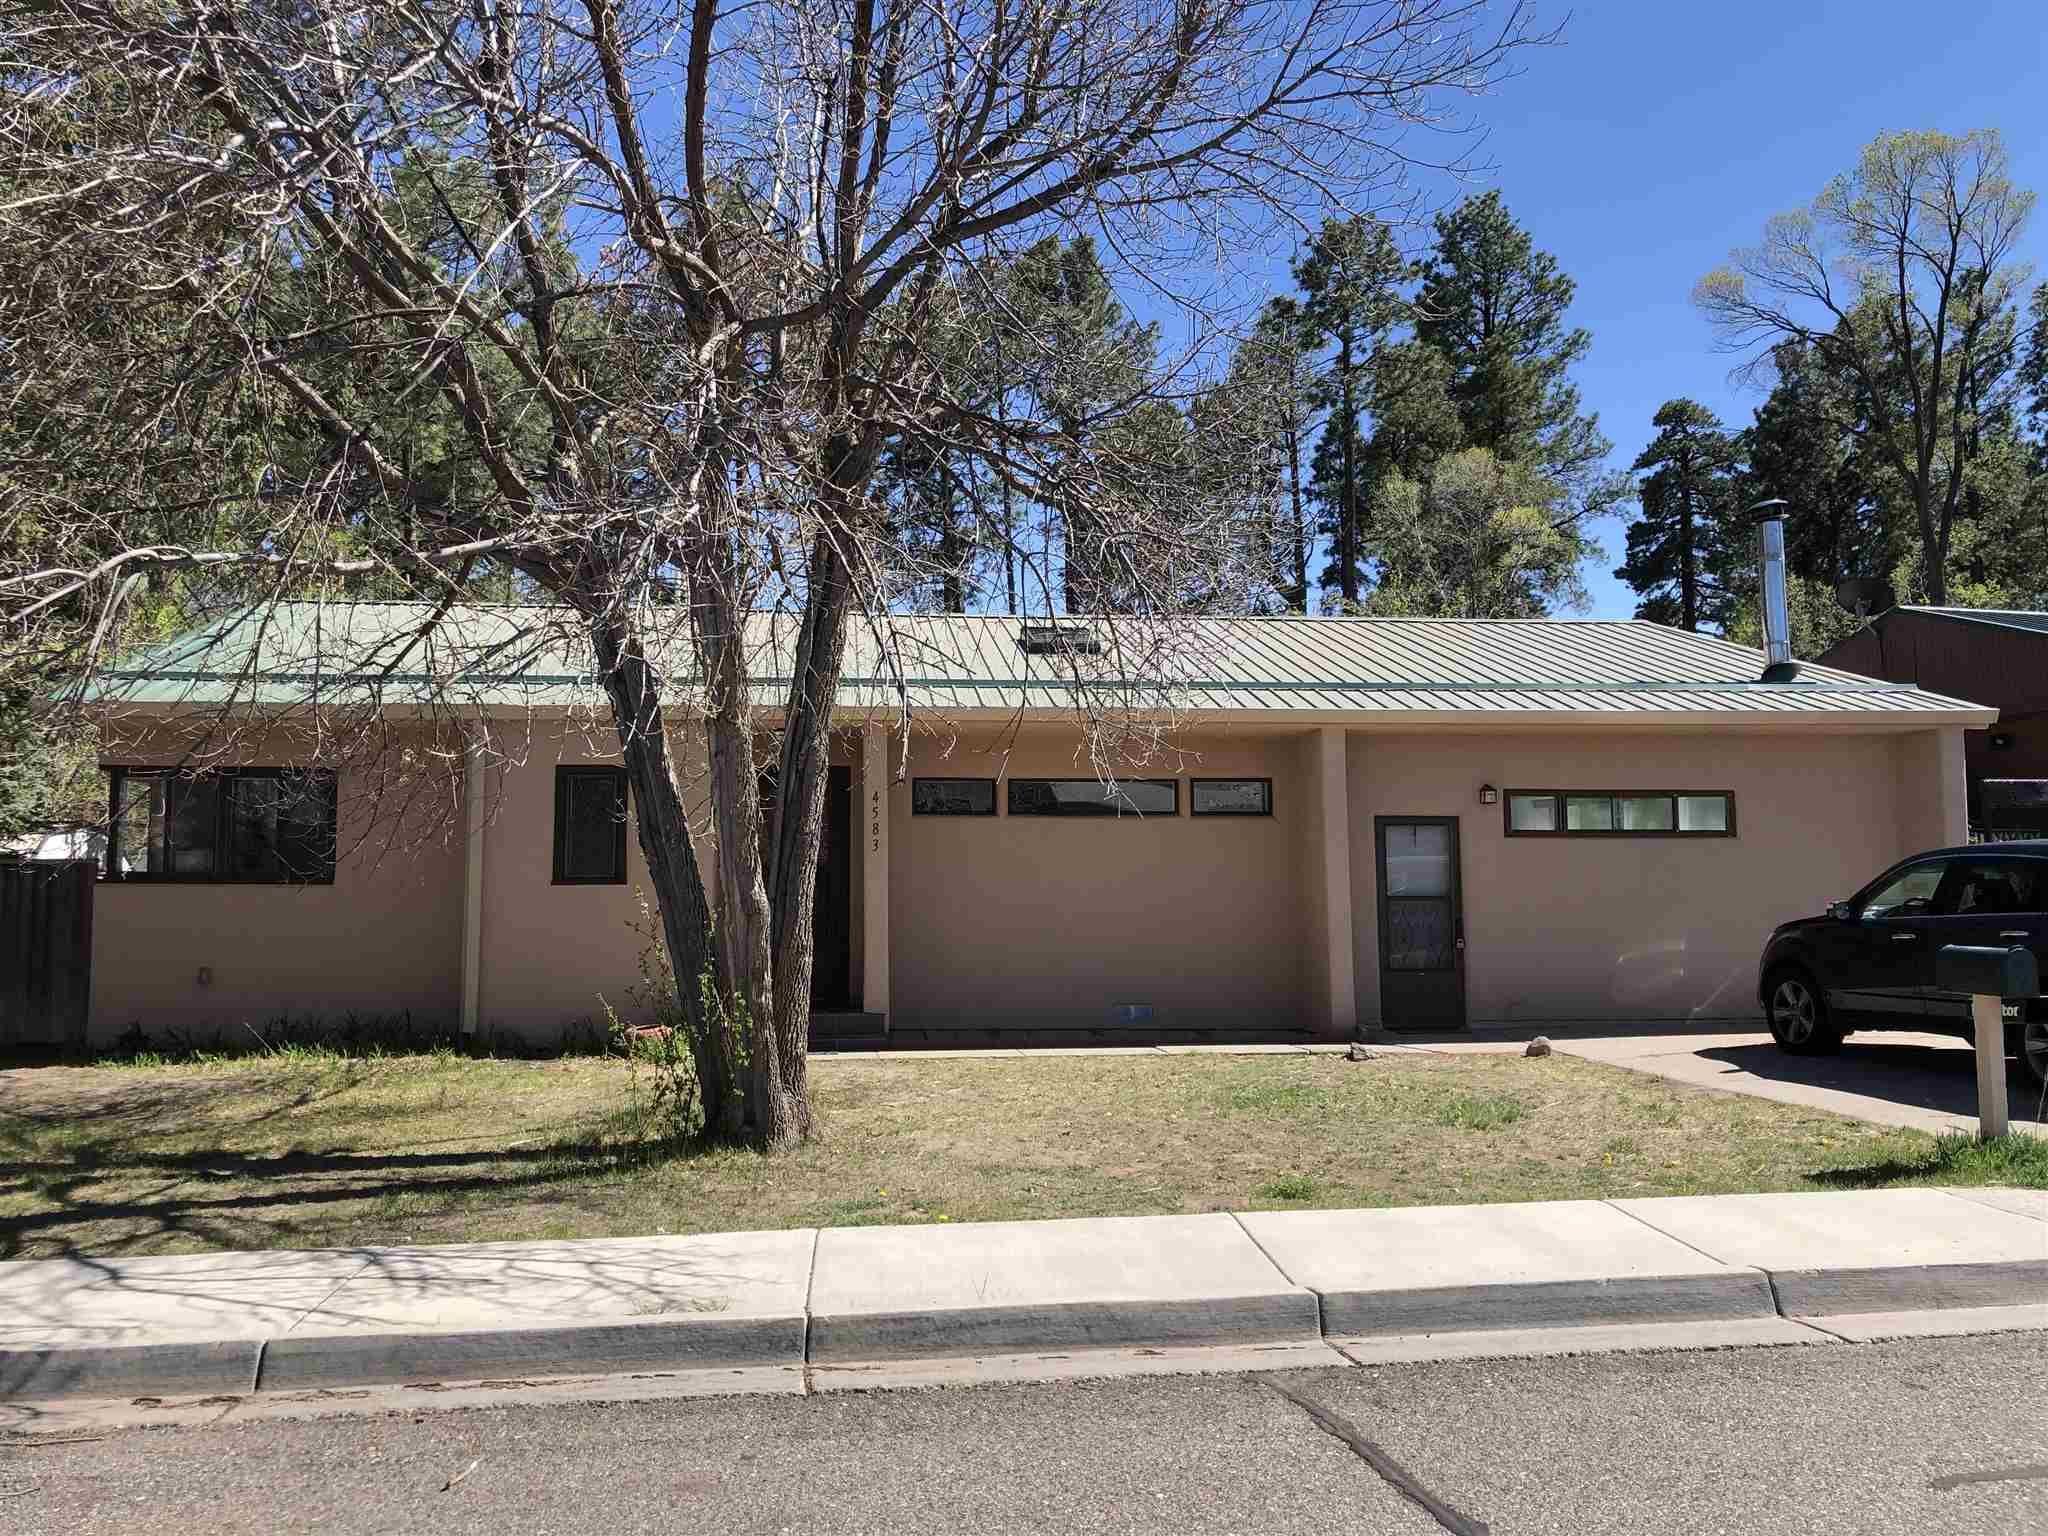 Come check out this sweet, move-in ready Western Area charmer! And looking for A/C? This home has a brand new central a/c with air scrubber/allergy reduction technology. The location of this property is fantastic! It is close to schools, parks, pools, trails, LAMC, LANL, and downtown. Western Area is a well established and highly regarded neighborhood. The property boasts a large, private, fenced and wooded back yard that is a blank slate; ready for you to design your own quiet, oasis. There are several fruit trees on the property There are also two sheds for storage. The pitched, metal roof has brand new gutters, and avalanche guards. The stucco is only a few years old and in great shape. Inside you'll find newly refinished-original solid hardwood floors in the living room, 2 bedrooms, dining room, and kitchen. The charming cottage kitchen is nicely a great workspace, and boasts 1-year old stainless steel appliances. The second living area has large windows, brick floors, and a wood burning stove. It's perfect as a year round space for relaxing. The home is full of open spaces, and lots of light. The large primary bedroom suite includes a wood stove, 3/4 bathroom, closet area and laundry with year old washer and dryer-this space also has income potential with it's own exterior entrance. On the other side of the house there are two large bedrooms, plus small office/storage room, and one full bath. The home has been well taken care of and is ready for you to enjoy!